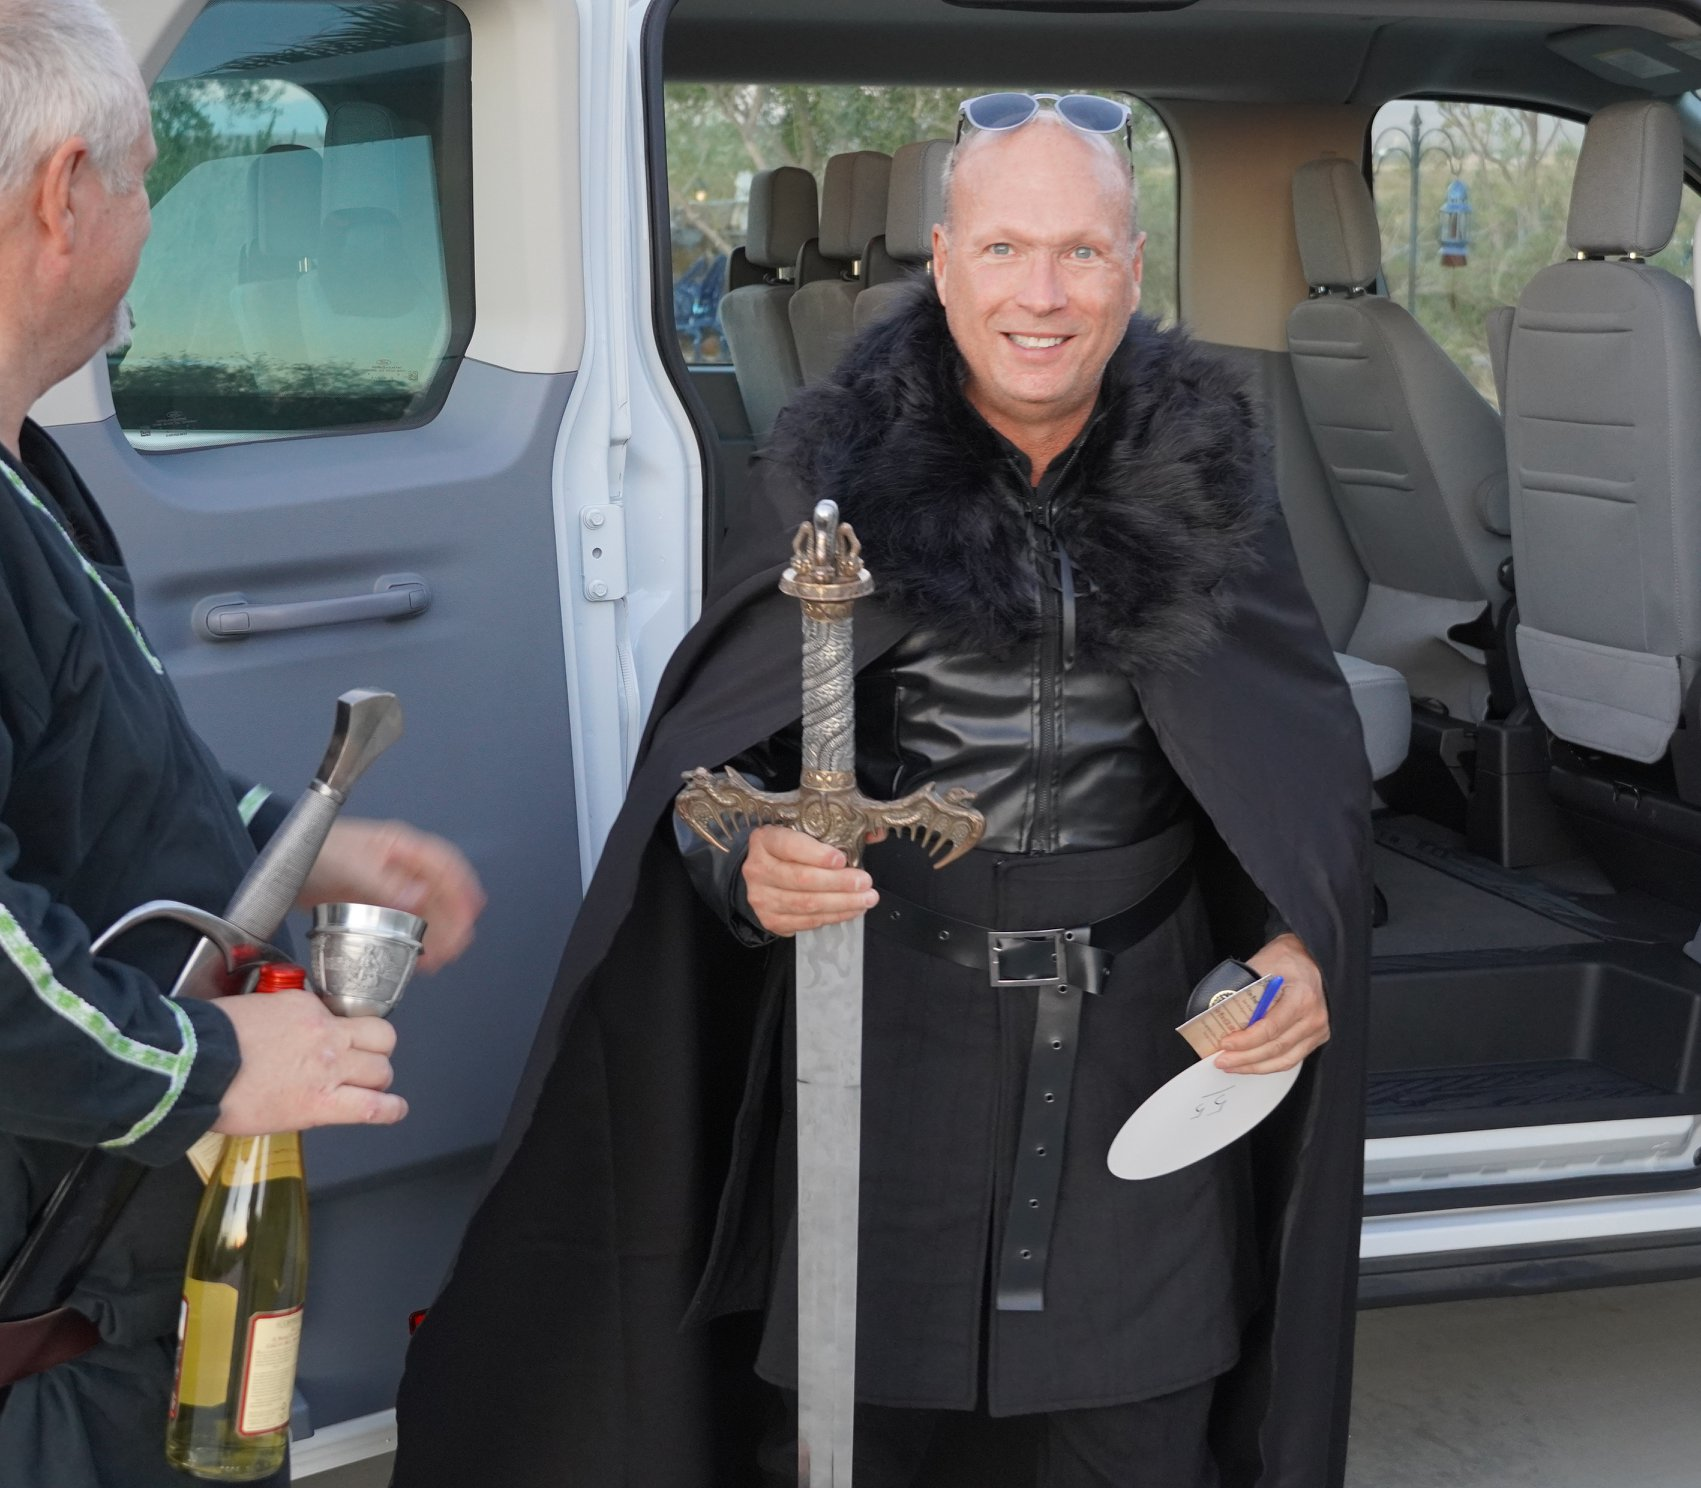 CEO Jim Suver arrives at medieval gala fundraiser